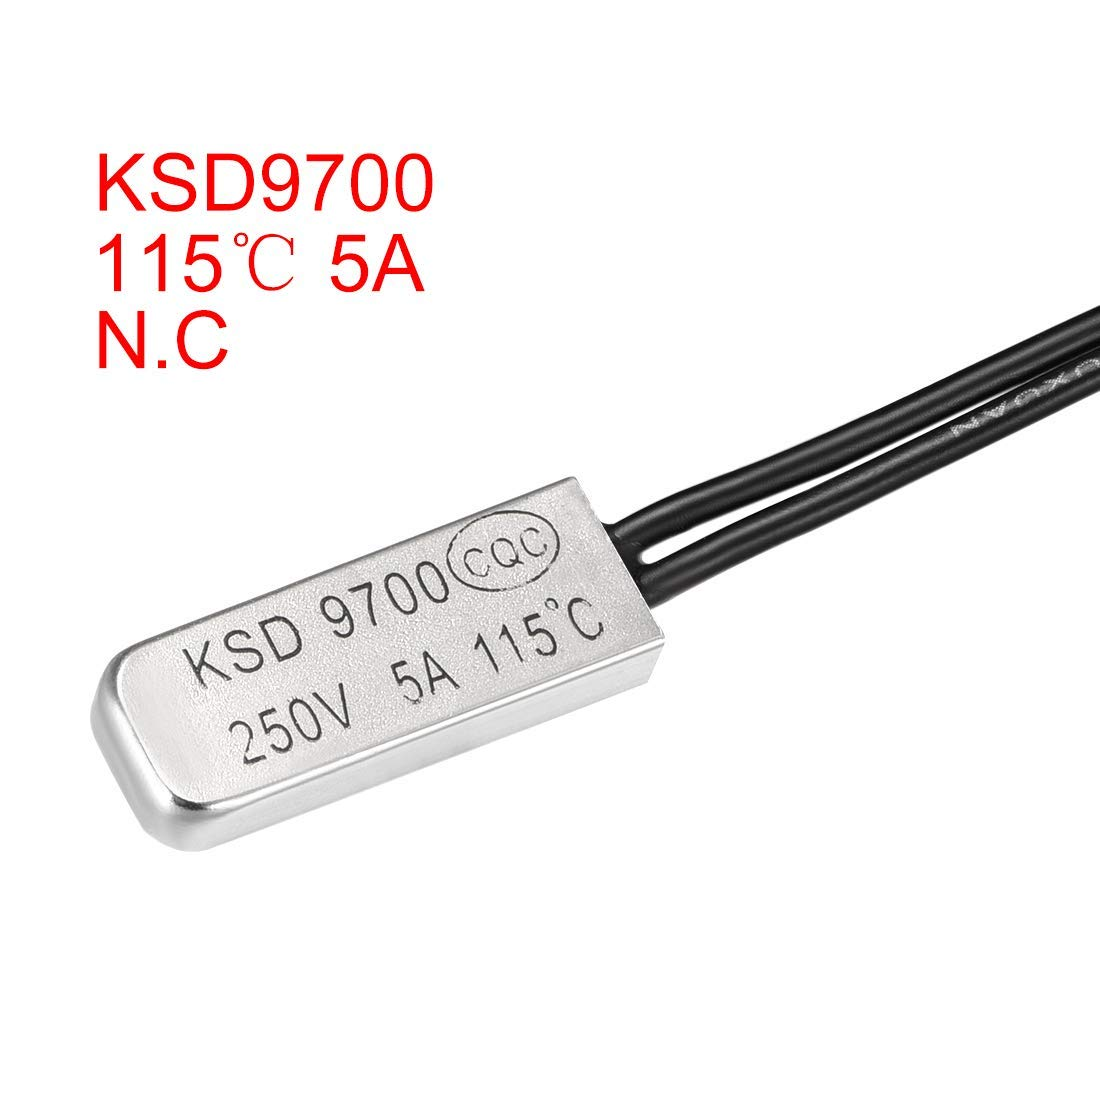 115 ℃ Normally Closed Temperature Switch Thermal Switch KSD9700 Thermostat N.C 5A Metal bimetallic Temperature Controller 2 Pieces